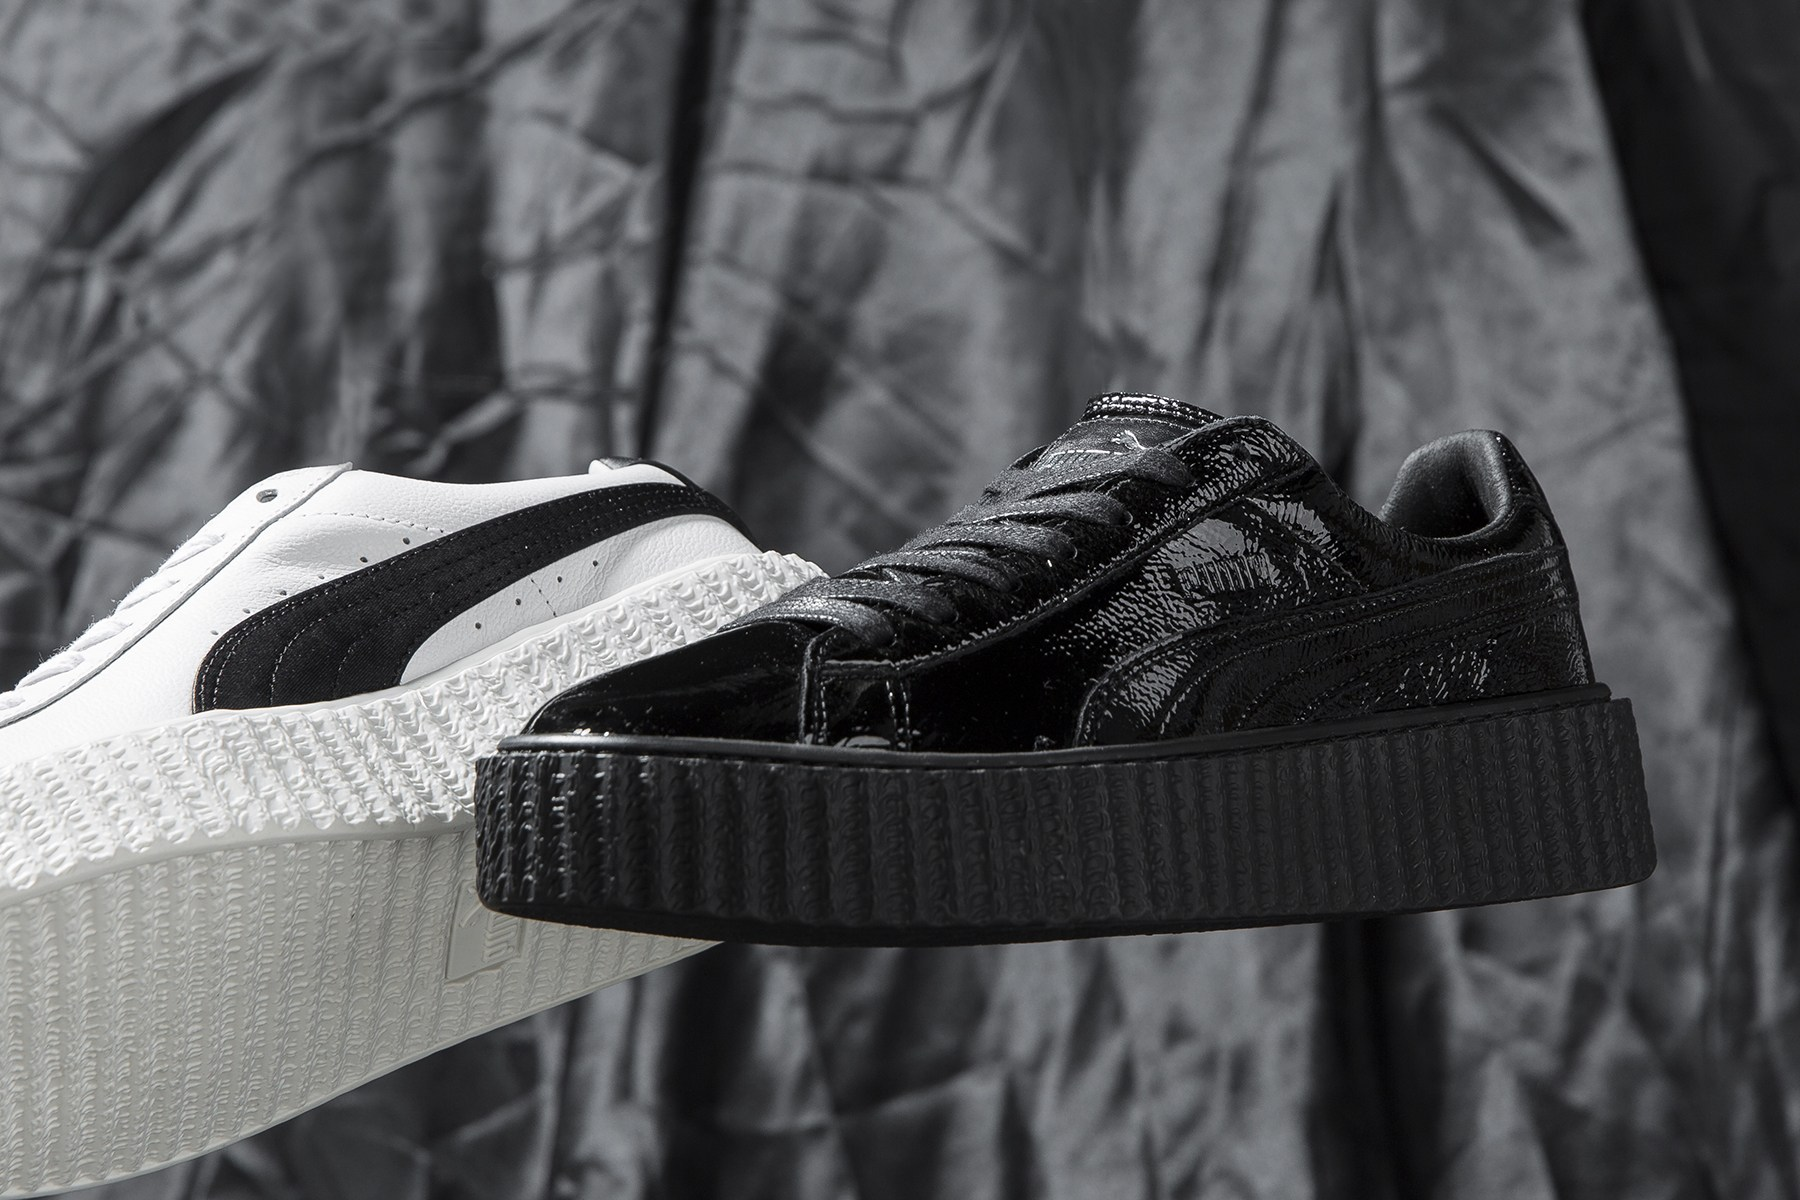 fenty-puma-cracked-leather-creeper-black-white-2